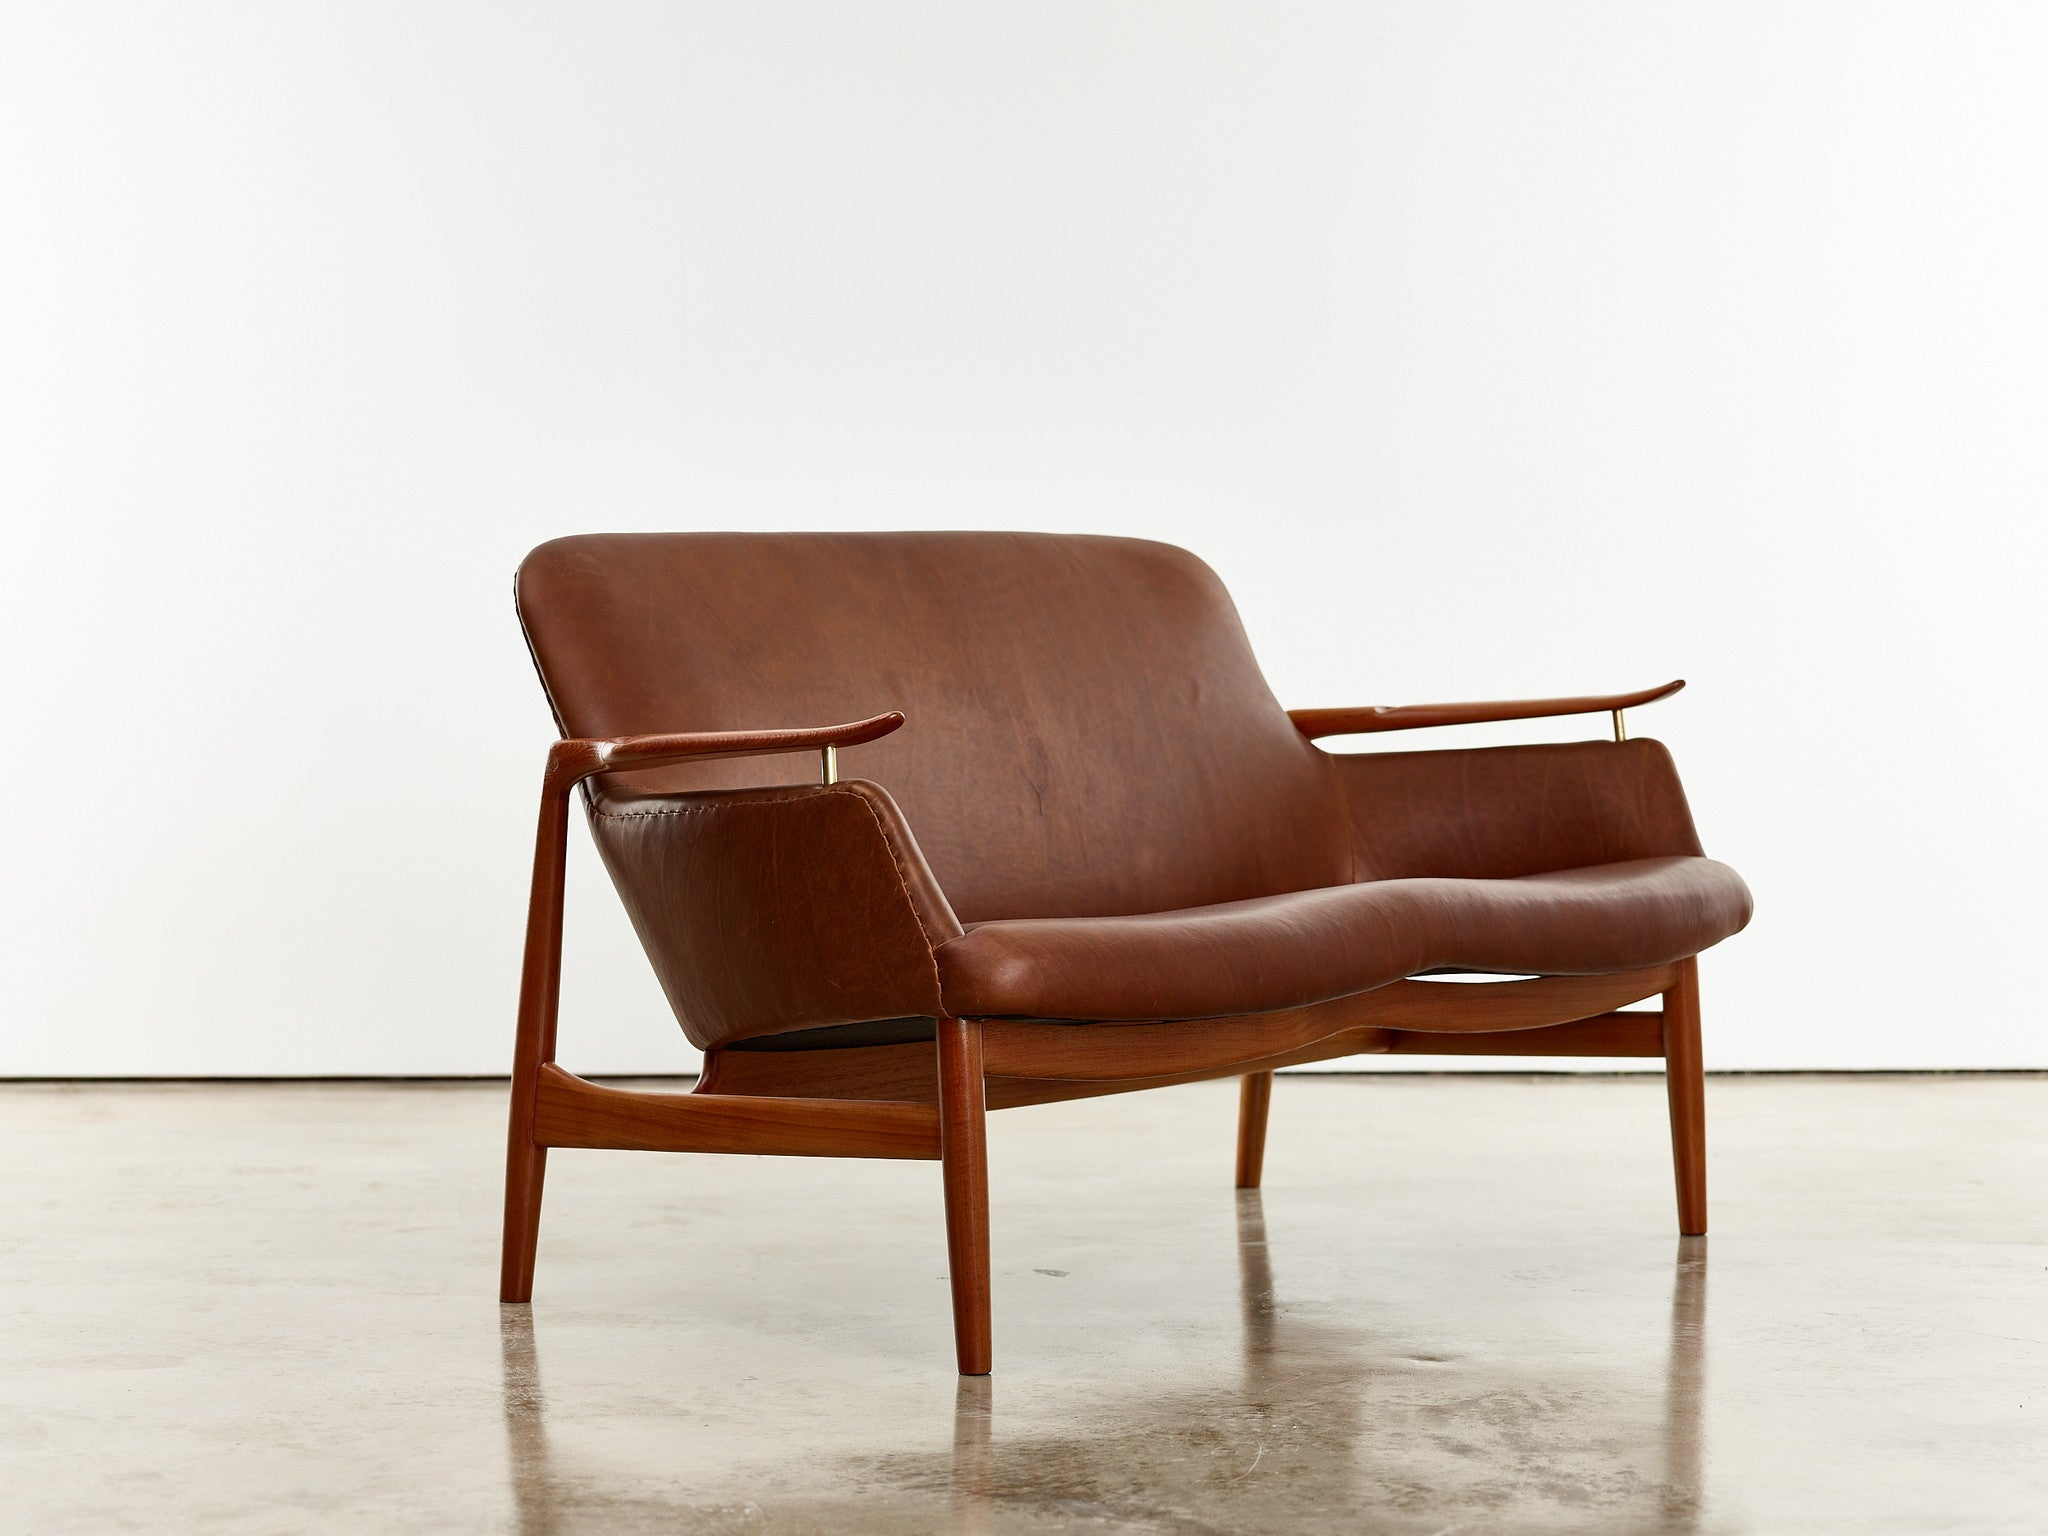 Finn Juhl Two-Seat Sofa, Model No. NV53 in Leather - The Exchange Int